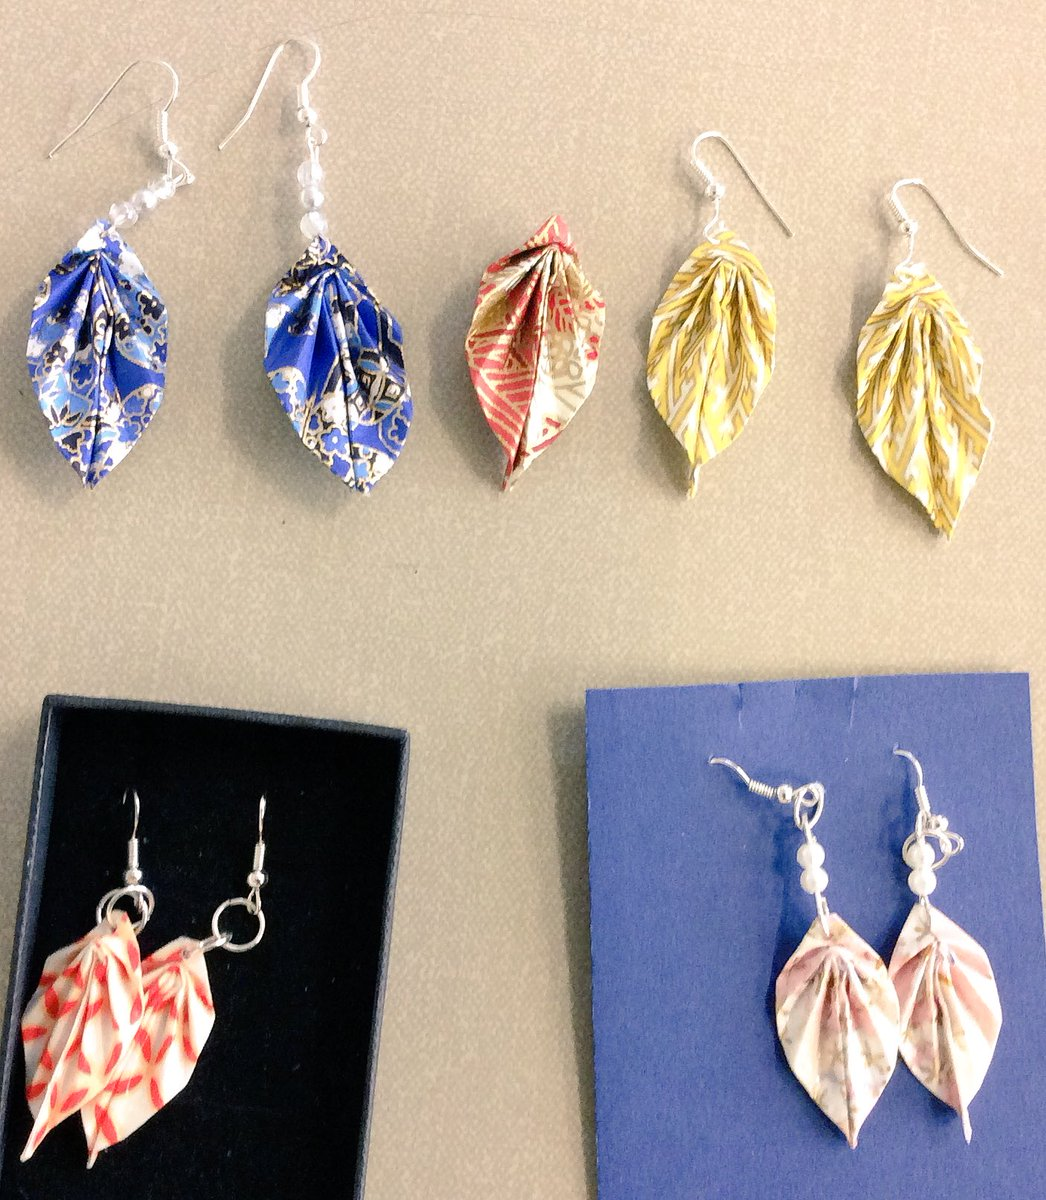 Origami Paper Leaf Earring Tutorial - The Artisan Life | 1200x1046